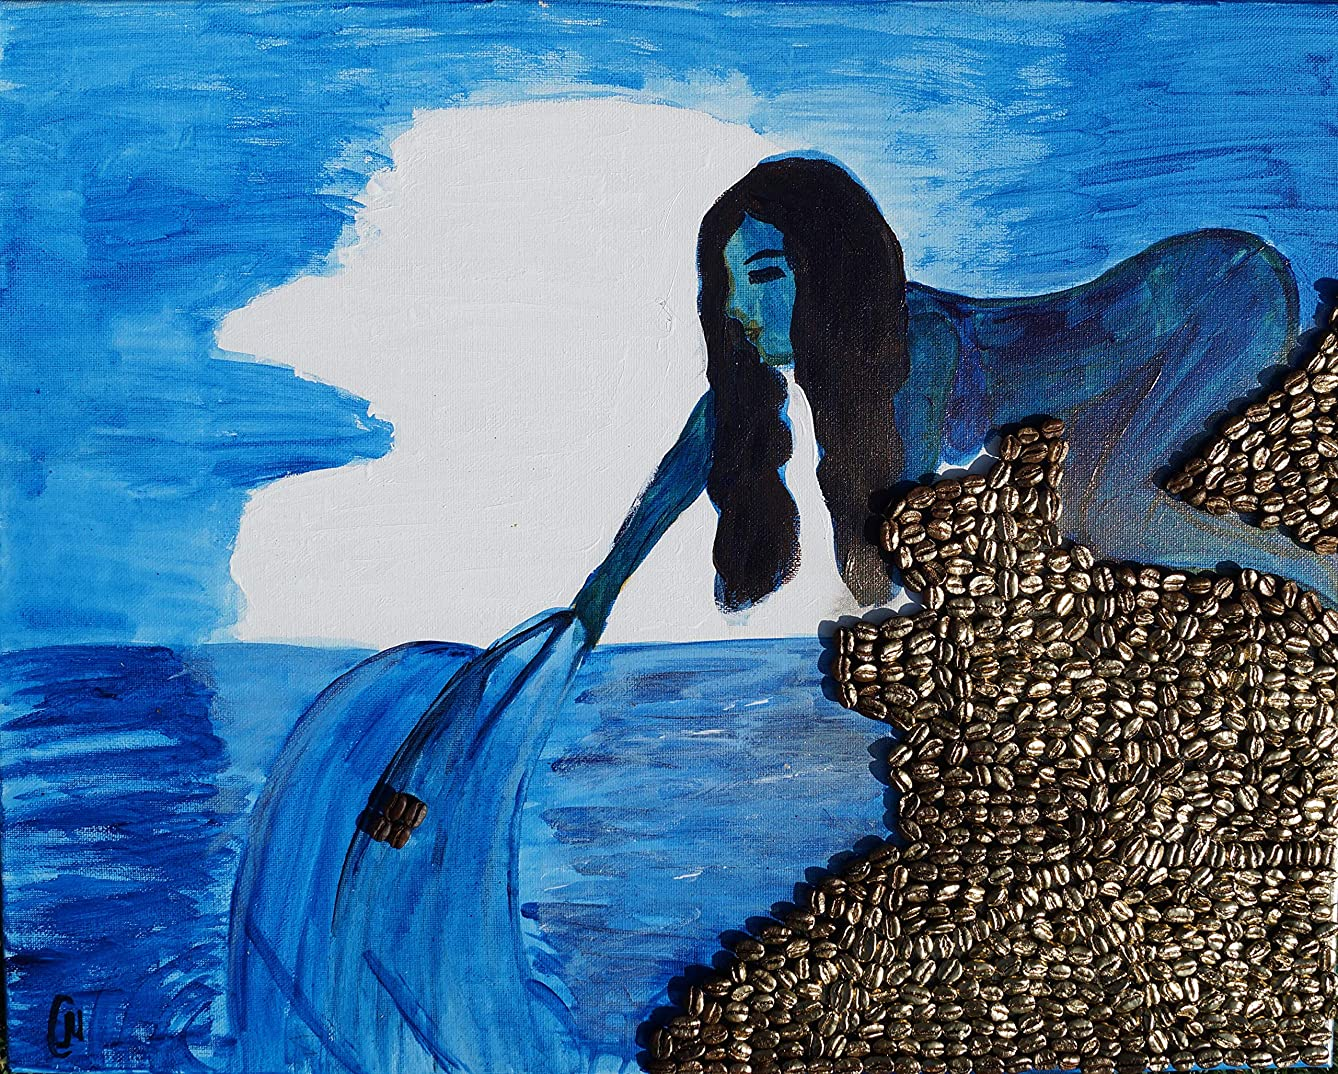 Undine, Drawing, Art, Watercolor Painting with Real Coffee Beans. 100% Handmade.